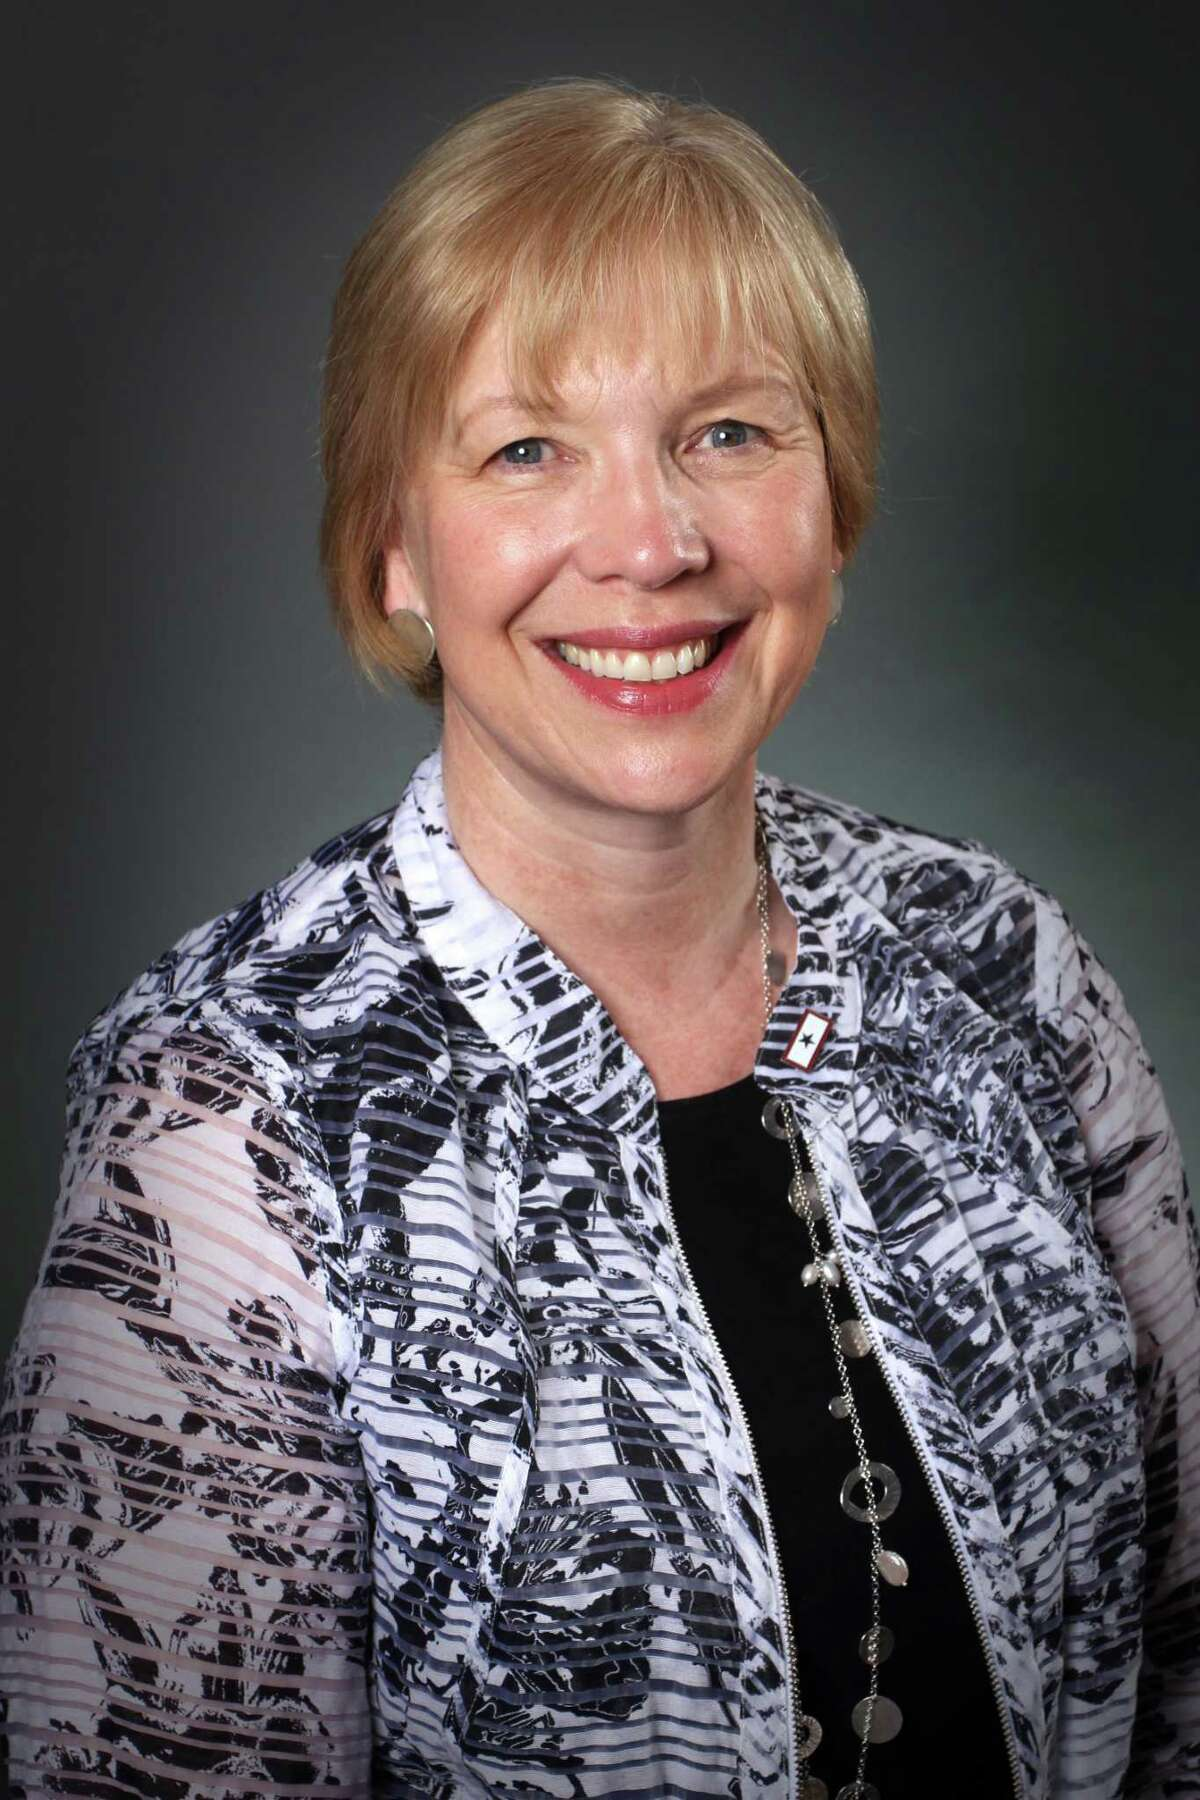 Dr. Robyn Phillips-Madson is the founding dean of the University of the Incarnate Word School of Osteopathic Medicine.